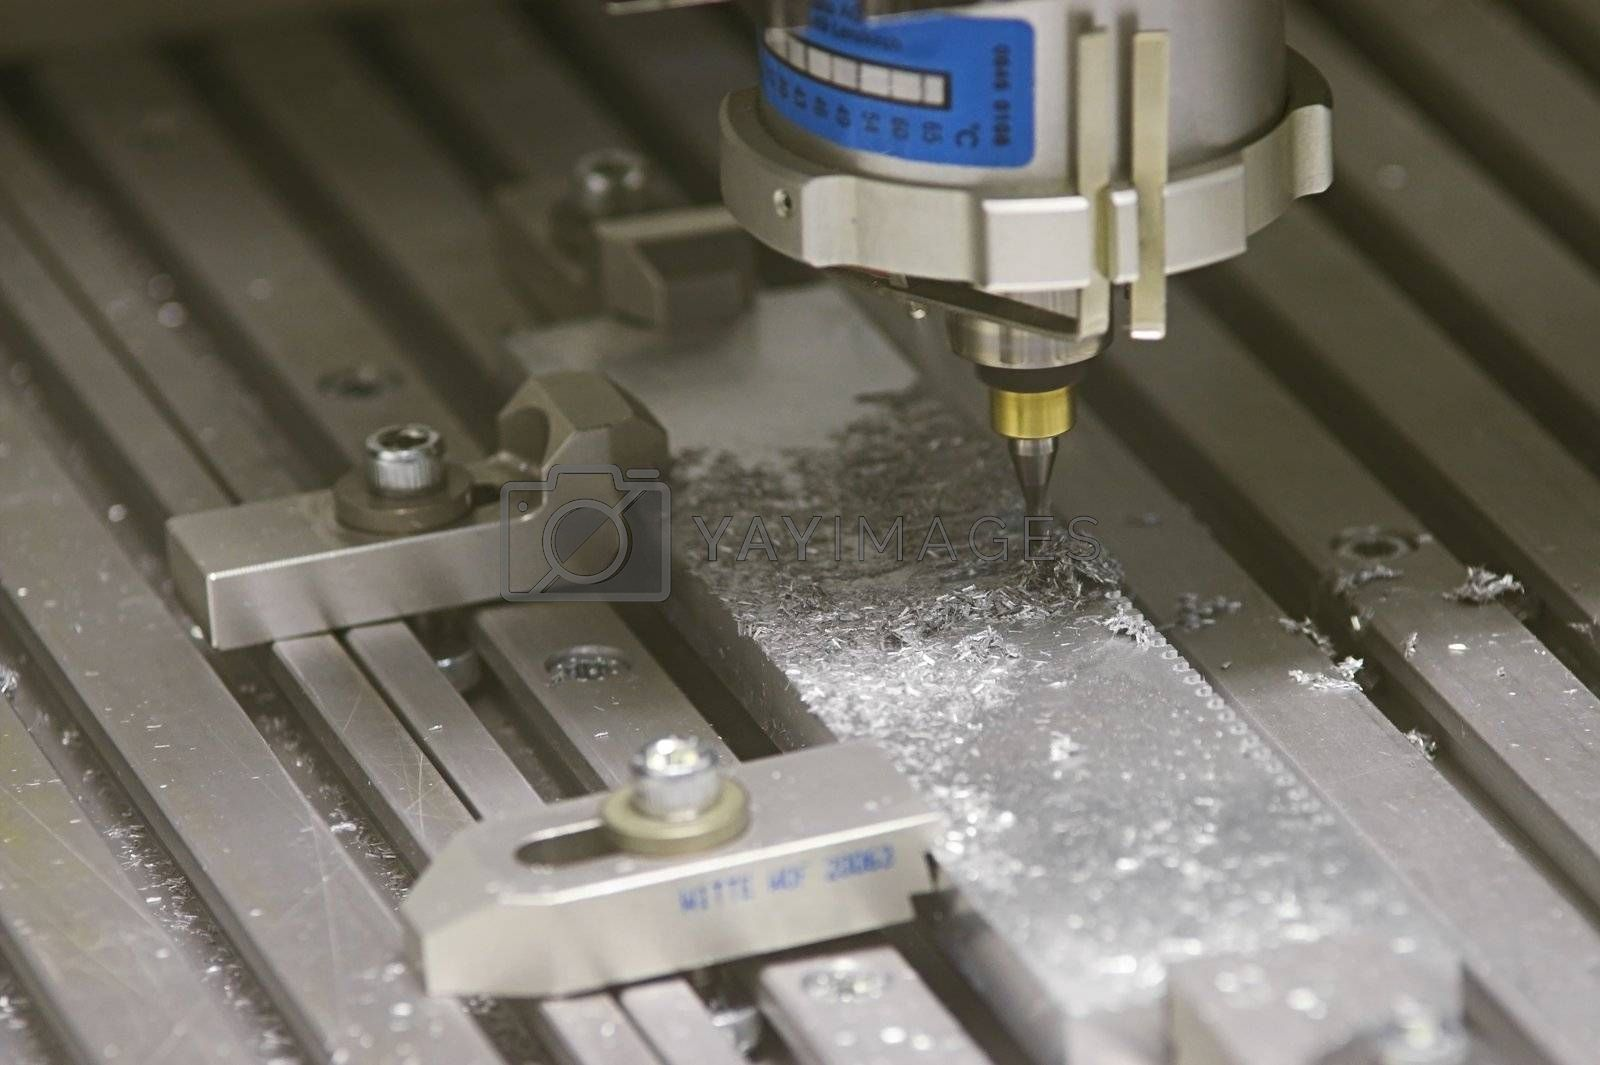 Drilling Machine automatically processing a metallic part.